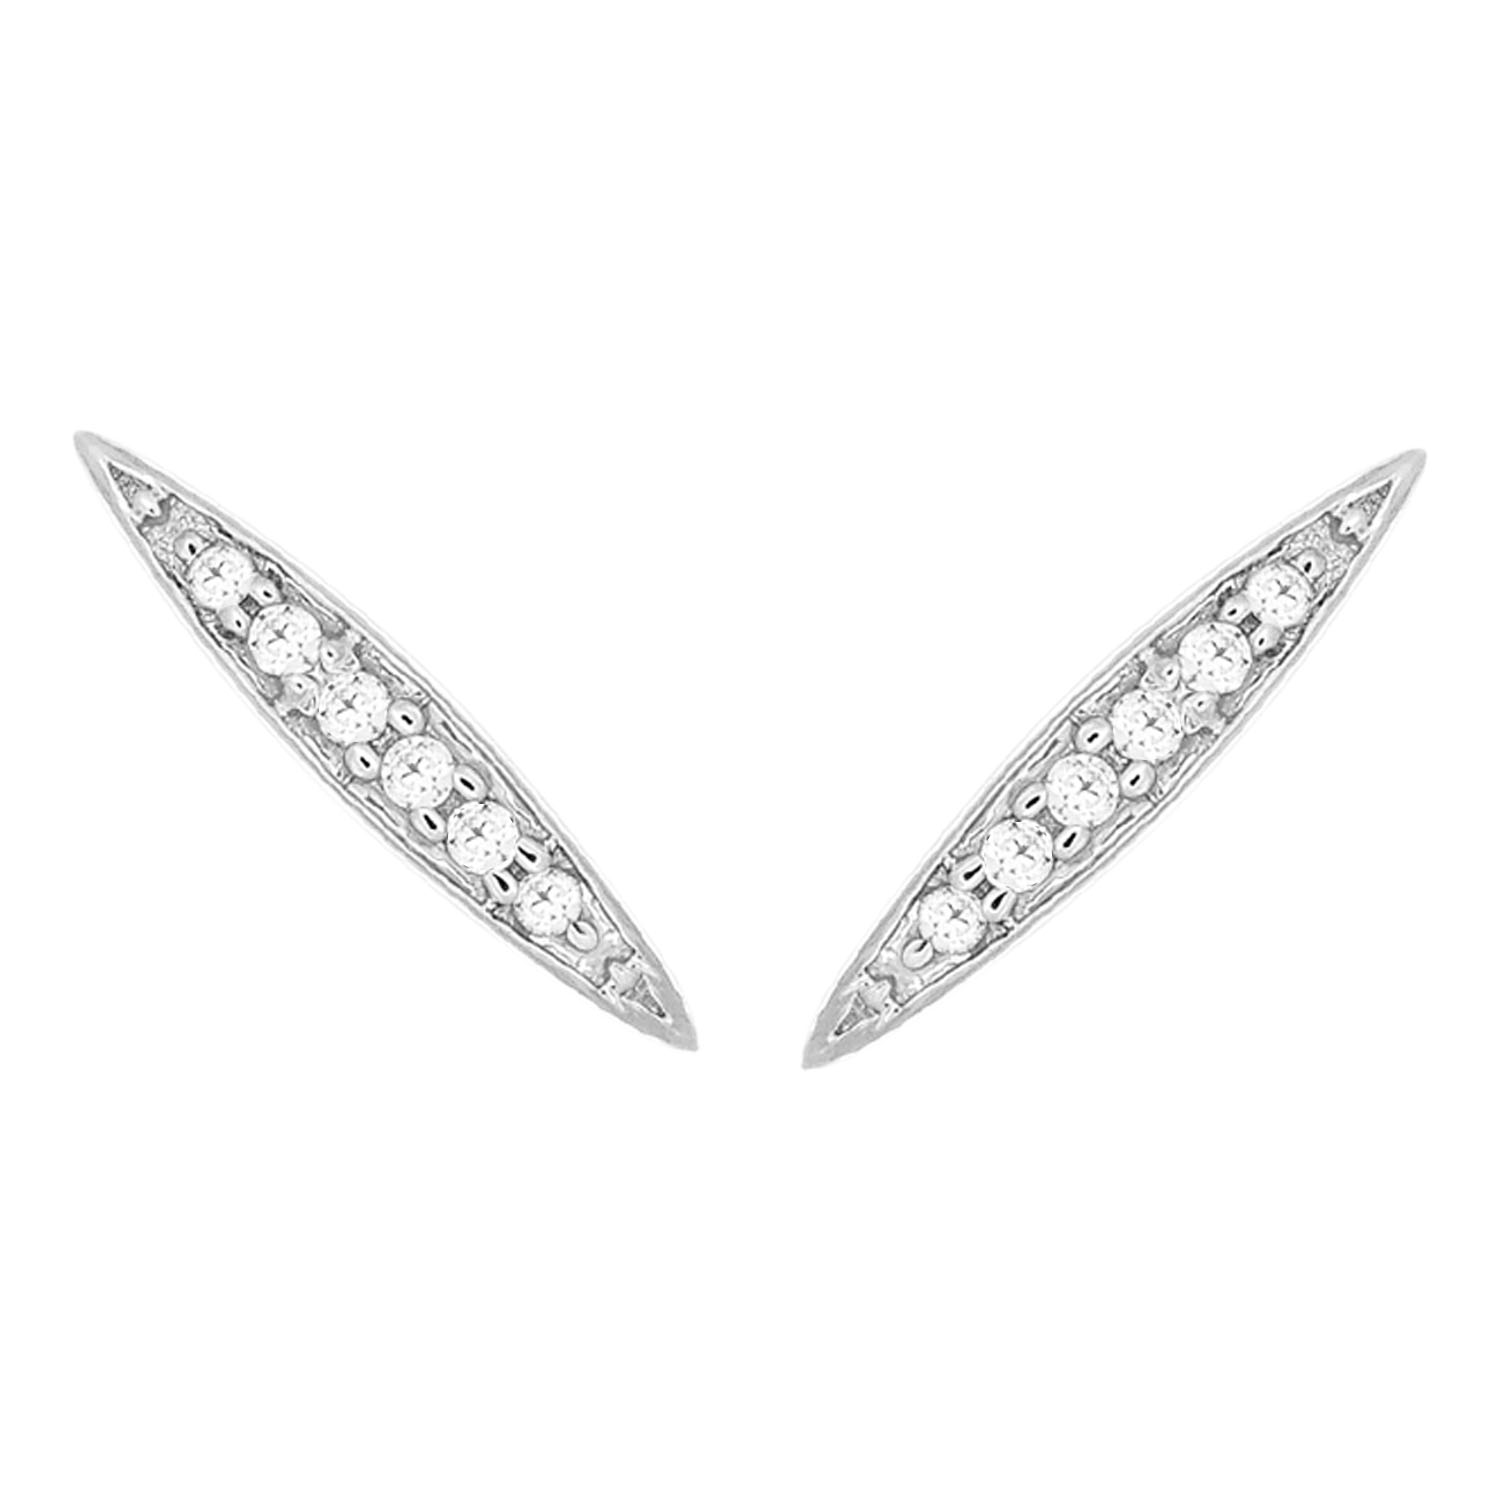 9ct White Gold 0.01 Carat Diamond Bar Earrings with 12 Brilliant Cut Diamonds